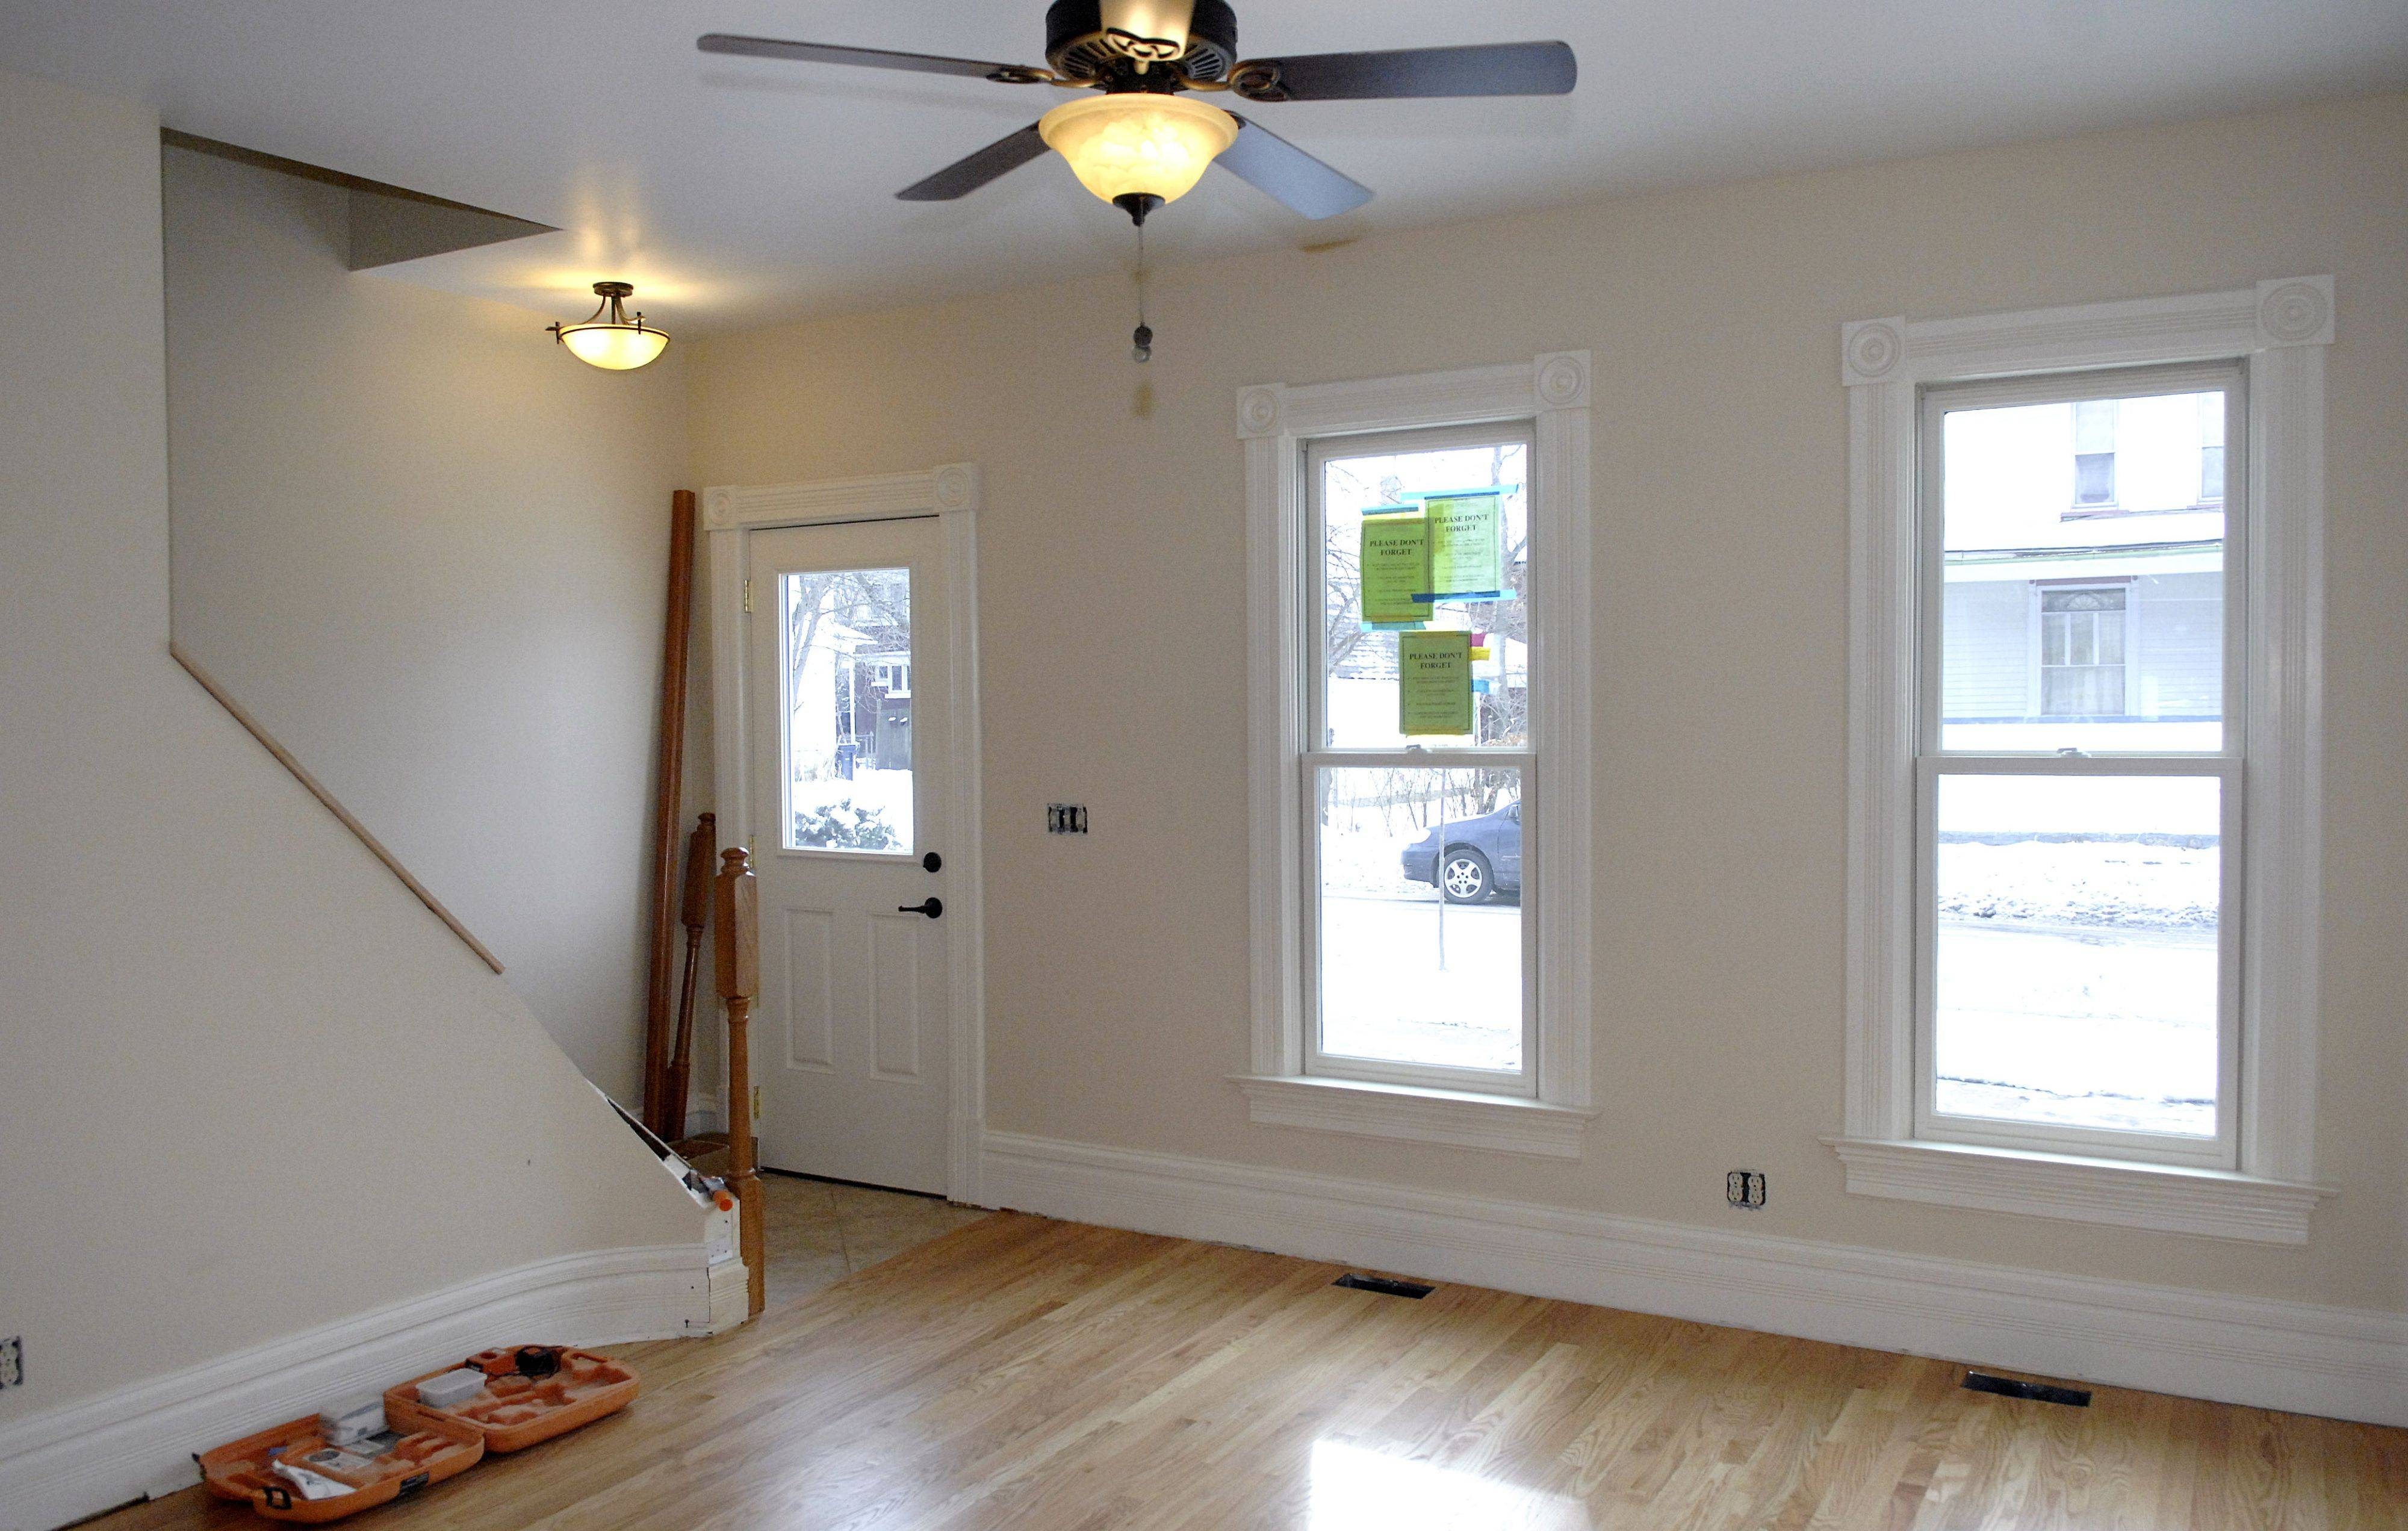 The living room in the house at 162 Summit St. in Elgin is shown here at the end of construction. This home was the first of Elgin's to sell in the Neighborhood Stabilization Program.